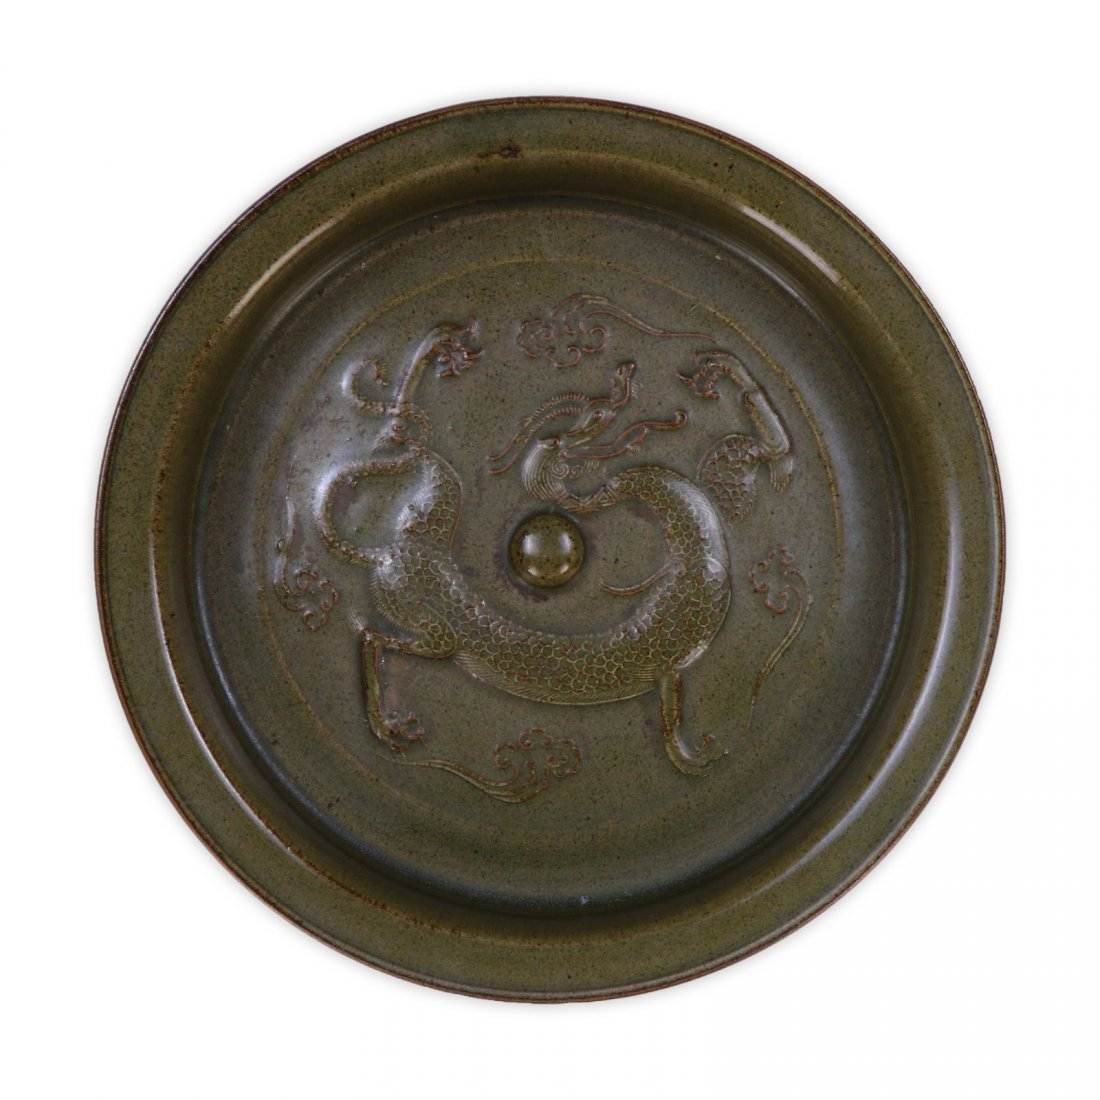 A CHINESE ANTIQUE CELADON GLAZED PORCELAIN TRIPOD PLATE - 4